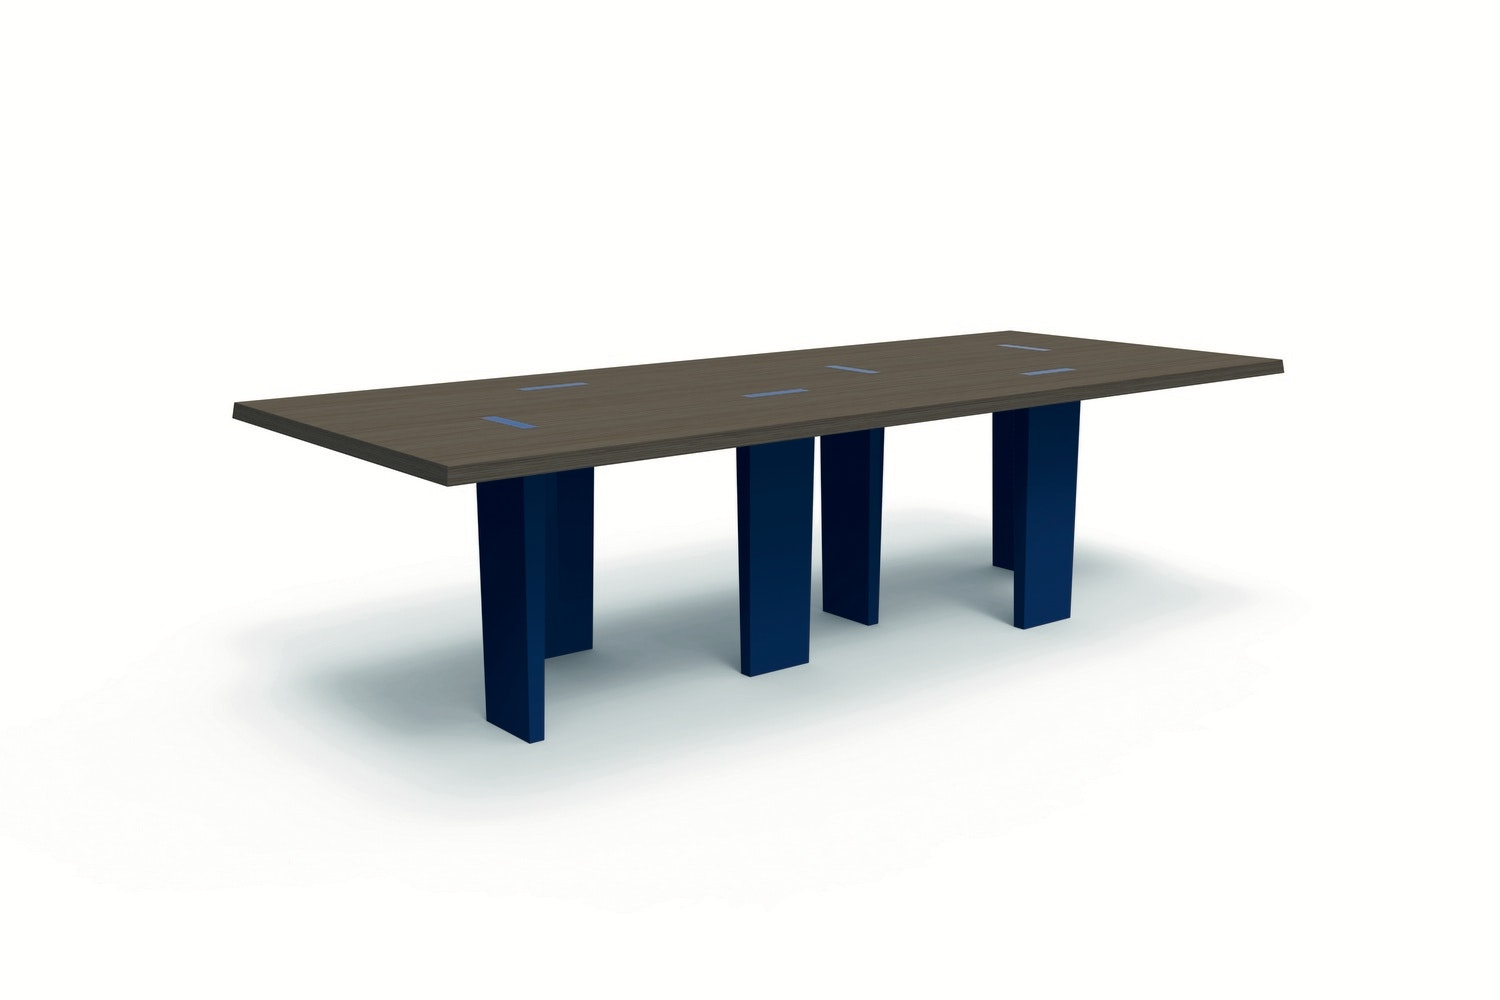 Domino Table by Claesson Koivisto Rune for Arflex